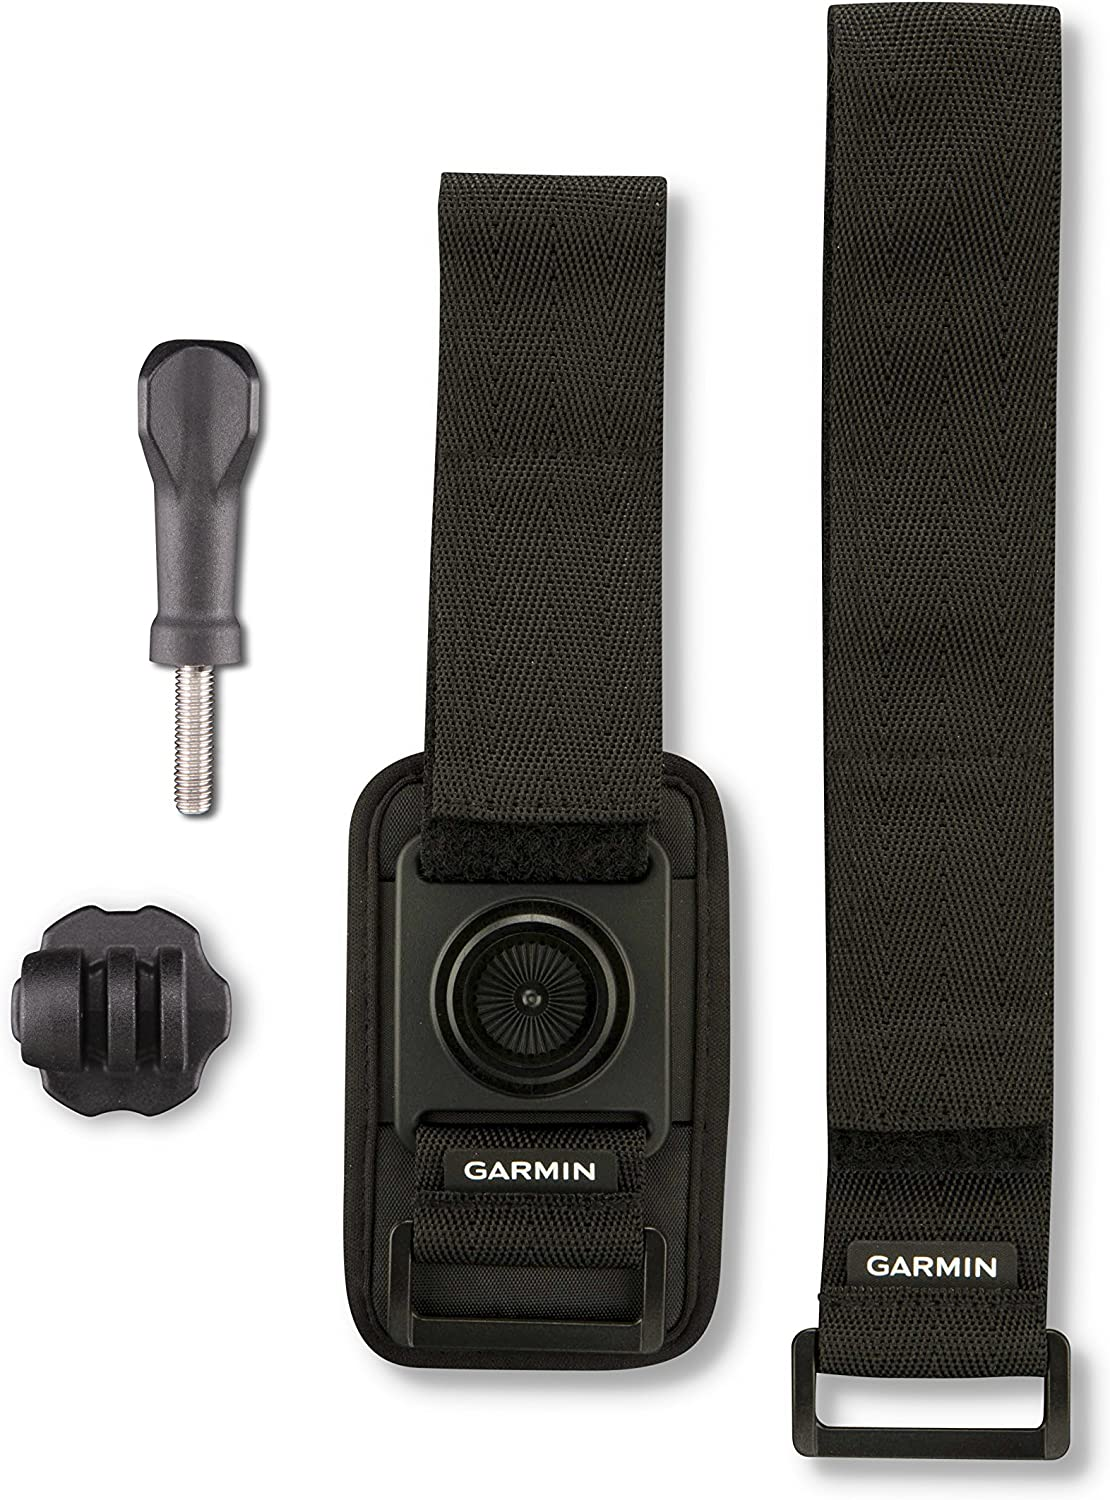 Garmin Wrist Strap Mount for Virb x and xe